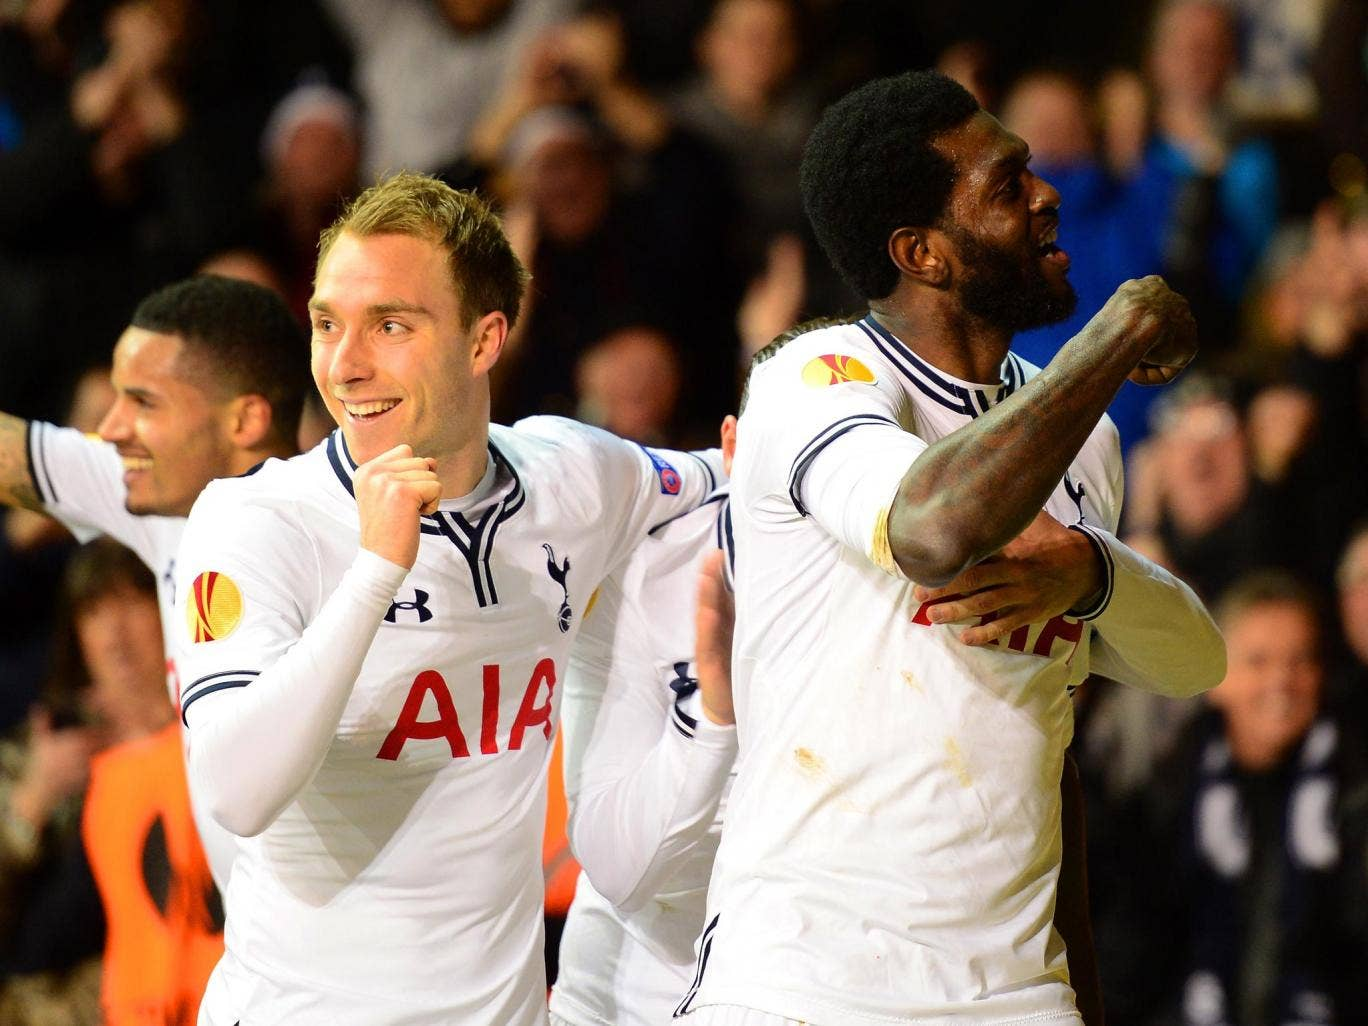 Emmanuel Adebayor of Tottenham Hotspur celebrates with team mate Christian Eriksen after scoring a goal